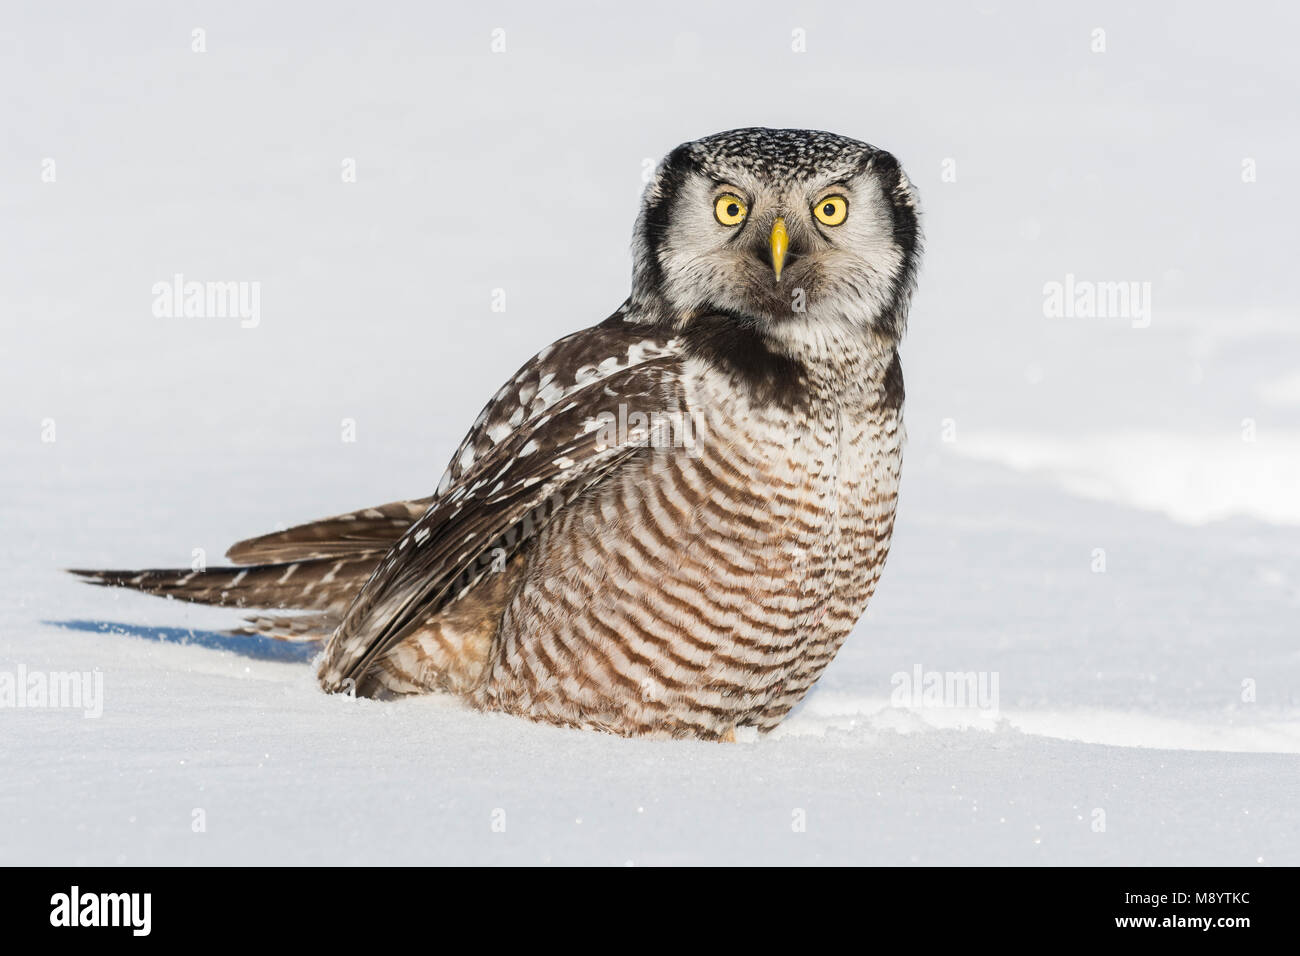 Northern Hawl Owl (Surnia ulula), St. Louis County, MN, USA, January, by Dominique Braud/Dembinsky Photo Assoc - Stock Image